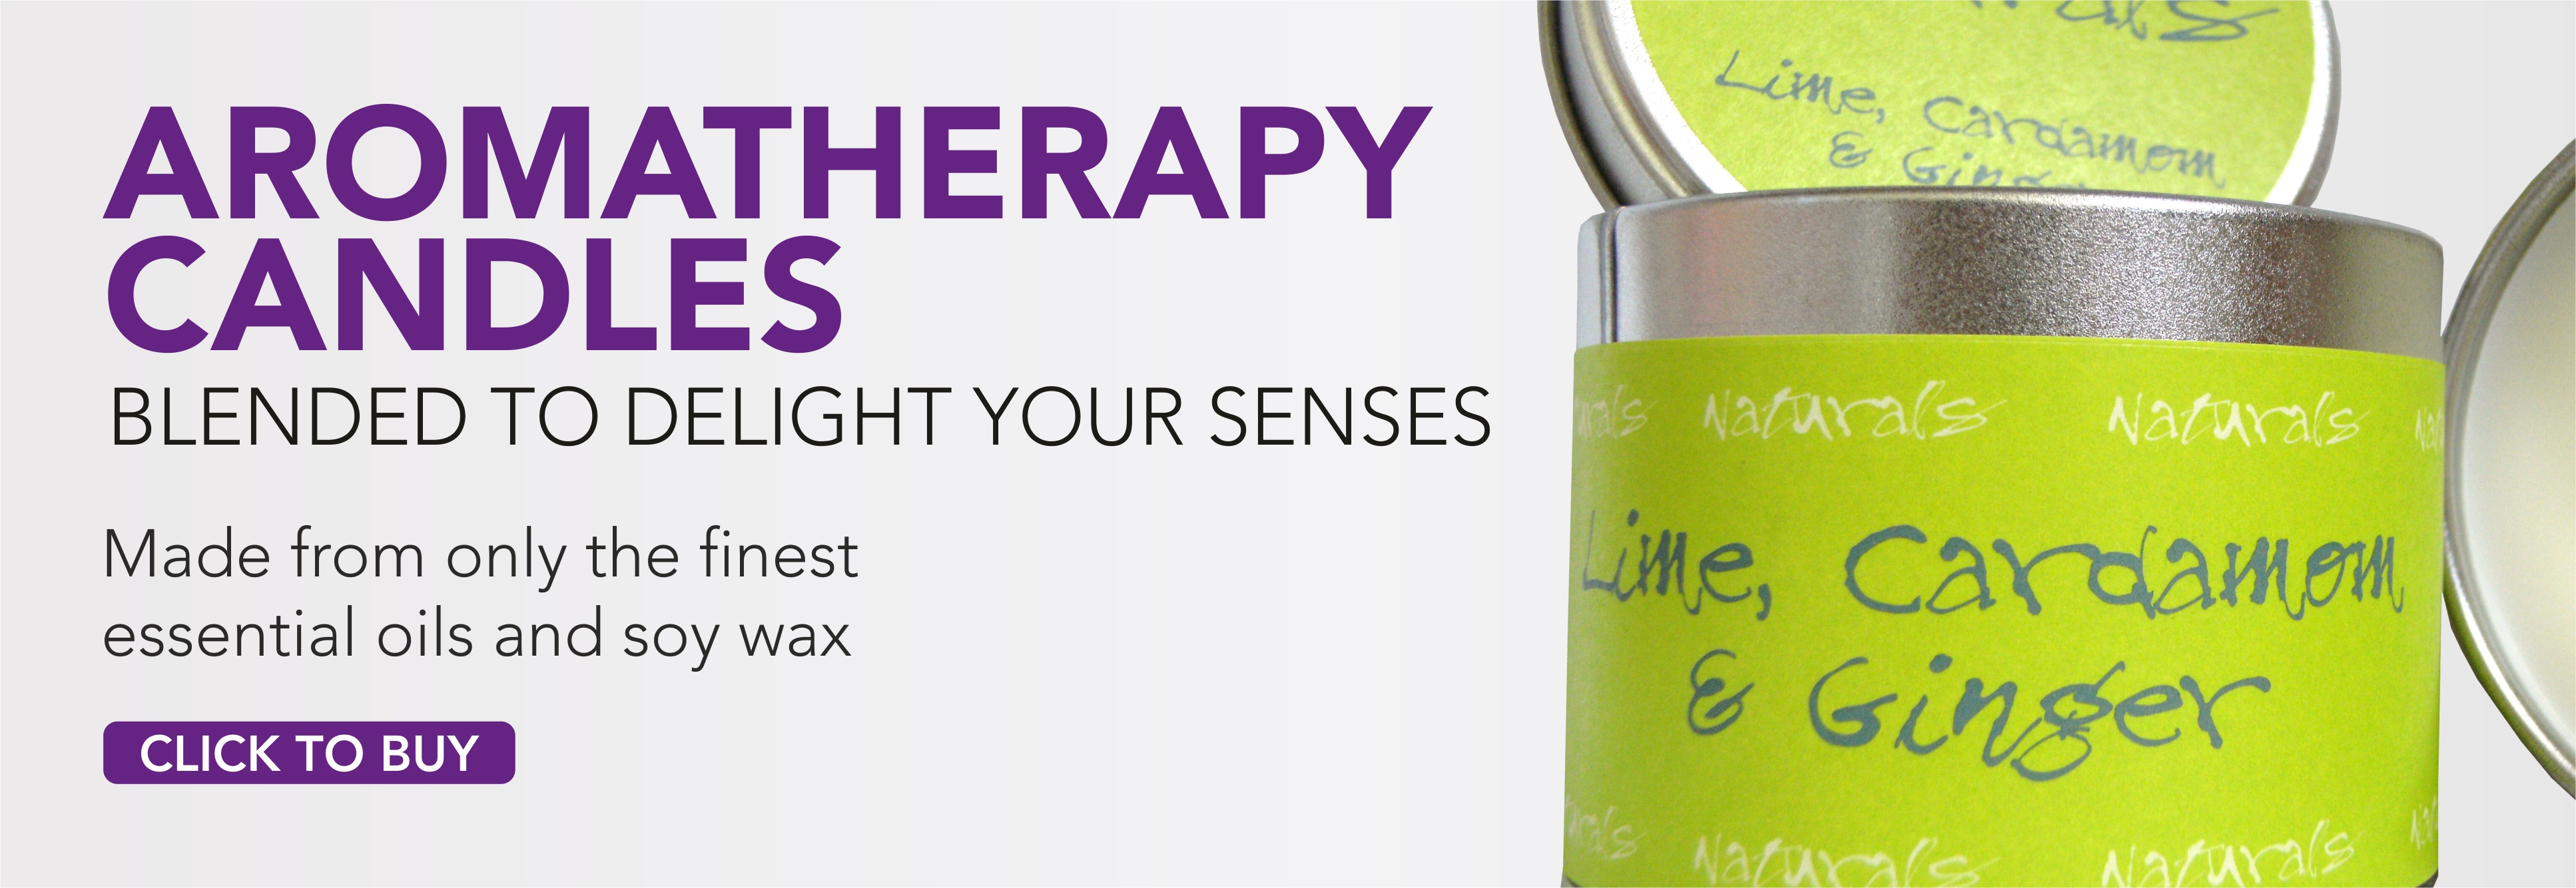 Aromatherapy Candle Web Banner 2 June 2014